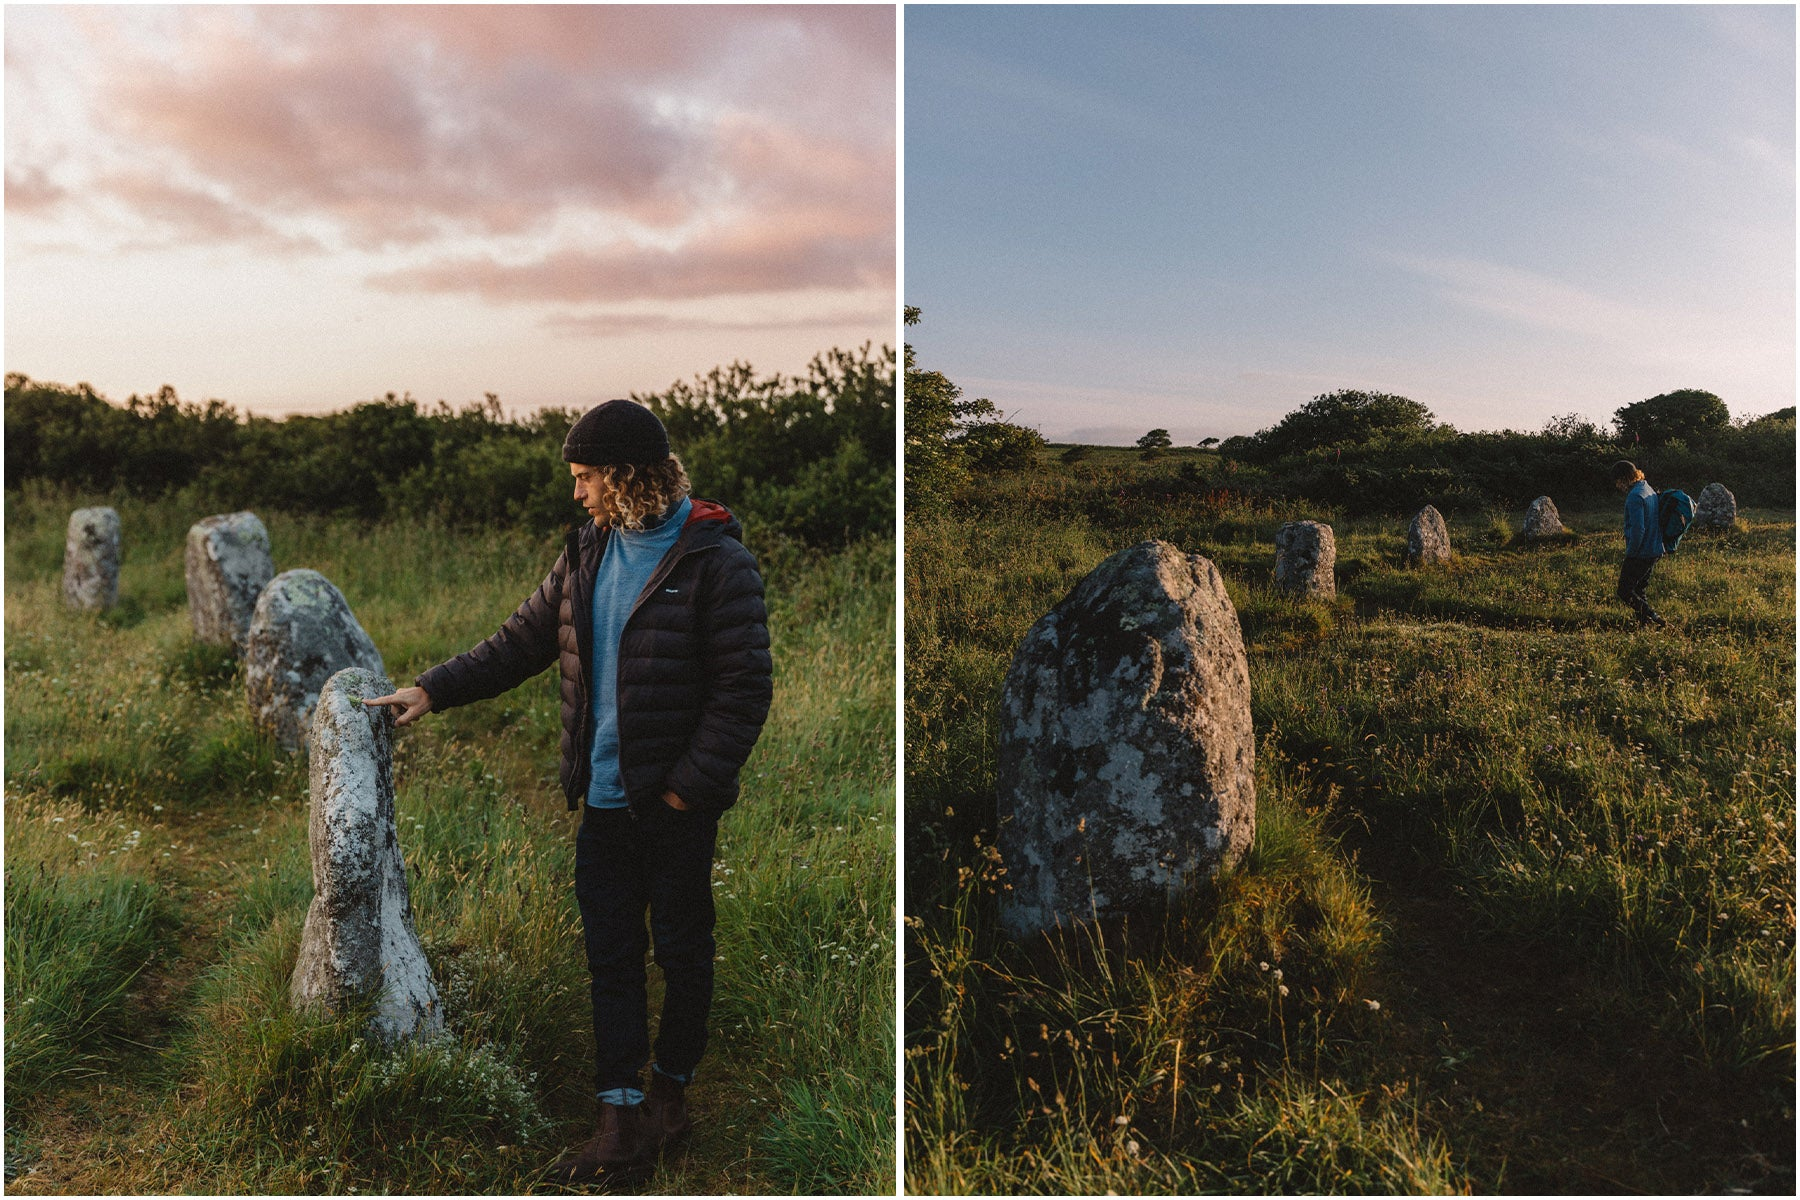 Pete Geall taking a moment to appreciate the ancient Boscawen-ûn stone circle